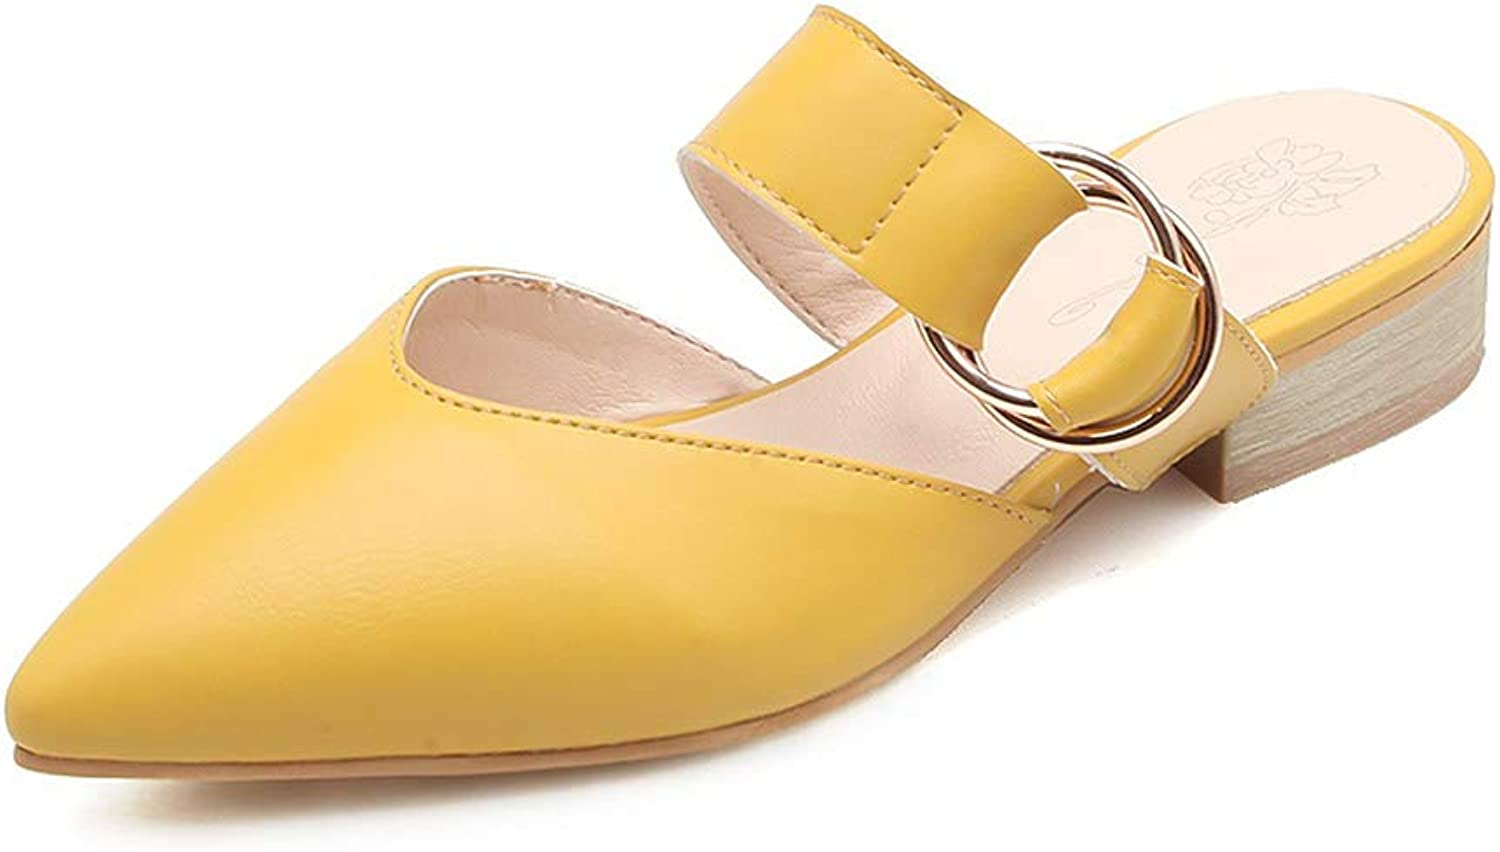 Eora-2sl Women Sandals Pointed Toe with Buckle Square Heel Women's Mules Sweet Ladies Dress shoes